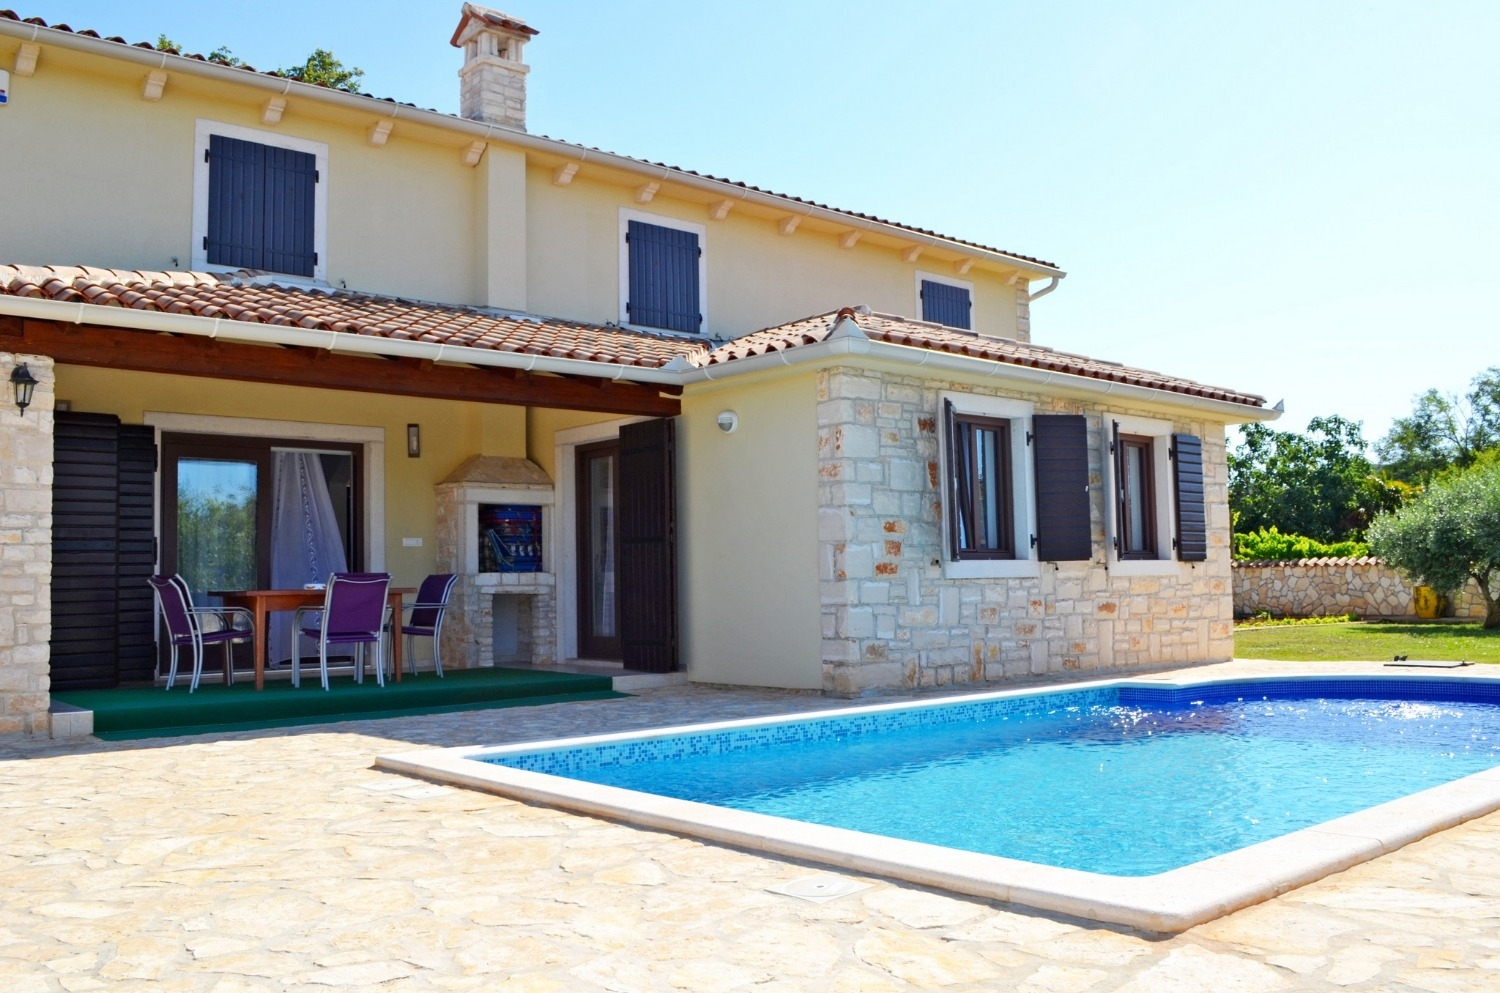 Holiday Homes, Medulin, Pula & south Istria - Holiday houses, villas  35978